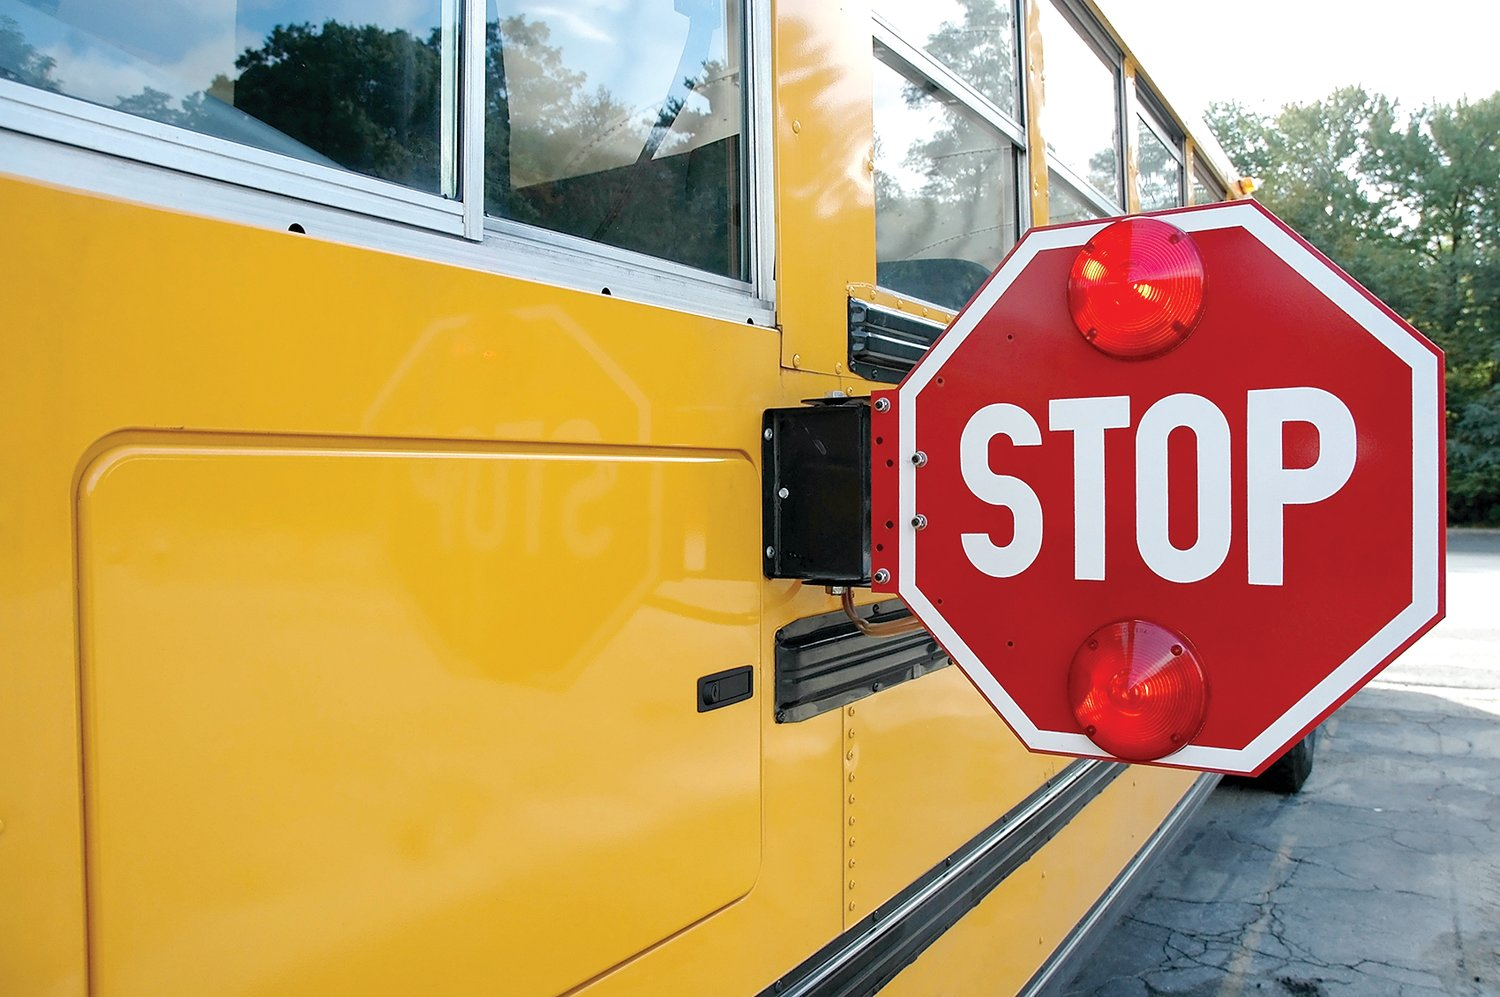 Don't forget about bus safety guidelines as students return to schools around the county next week.